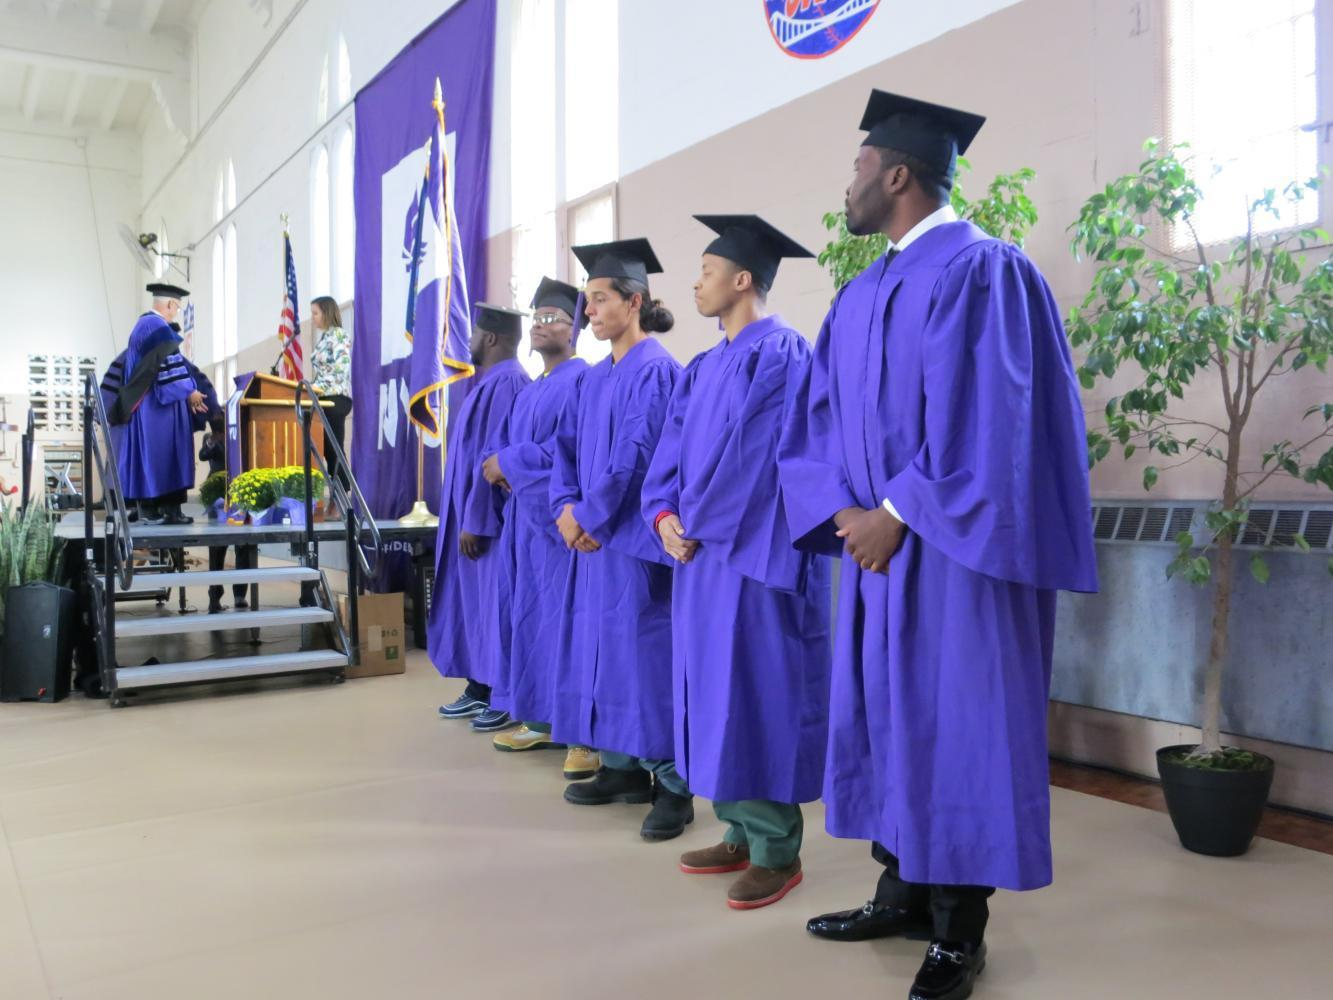 President Hamilton and Gallatin Dean Susanne Wofford attended the first graduation of NYU's Prison Education Program where five students received associate's degrees in Liberal Studies.